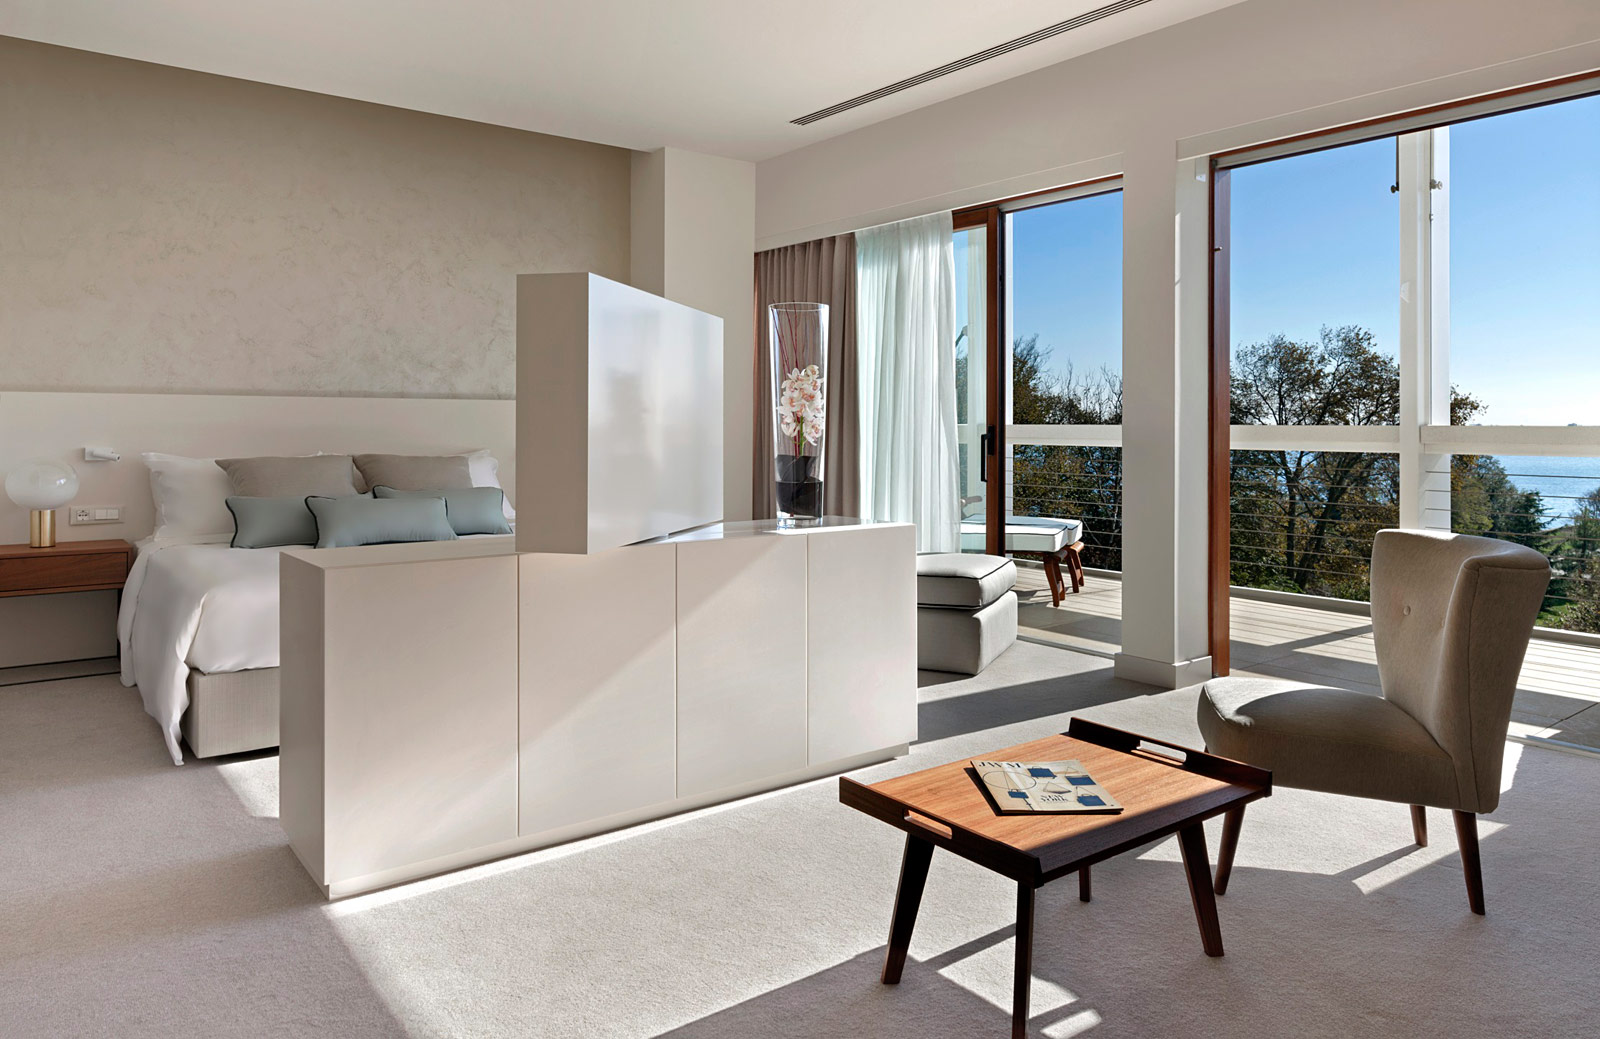 A junior suite at the J W Marriott's Venice Resort & Spa